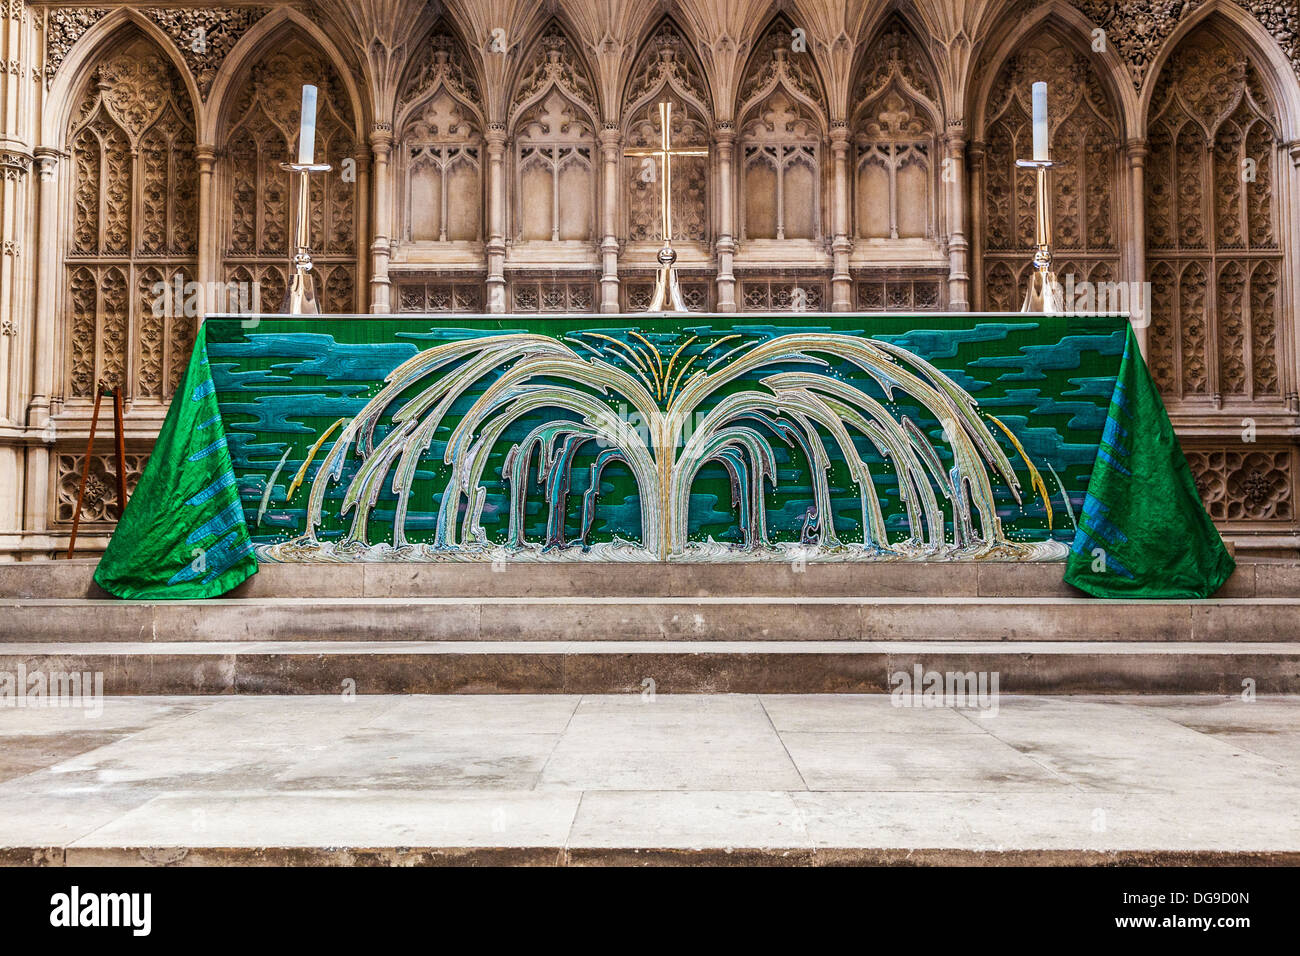 The Trinity Altar Frontal in Bath Abbey, inspired by Revelations 22:1 and made by Jane Lemon and The Sarum Group. - Stock Image